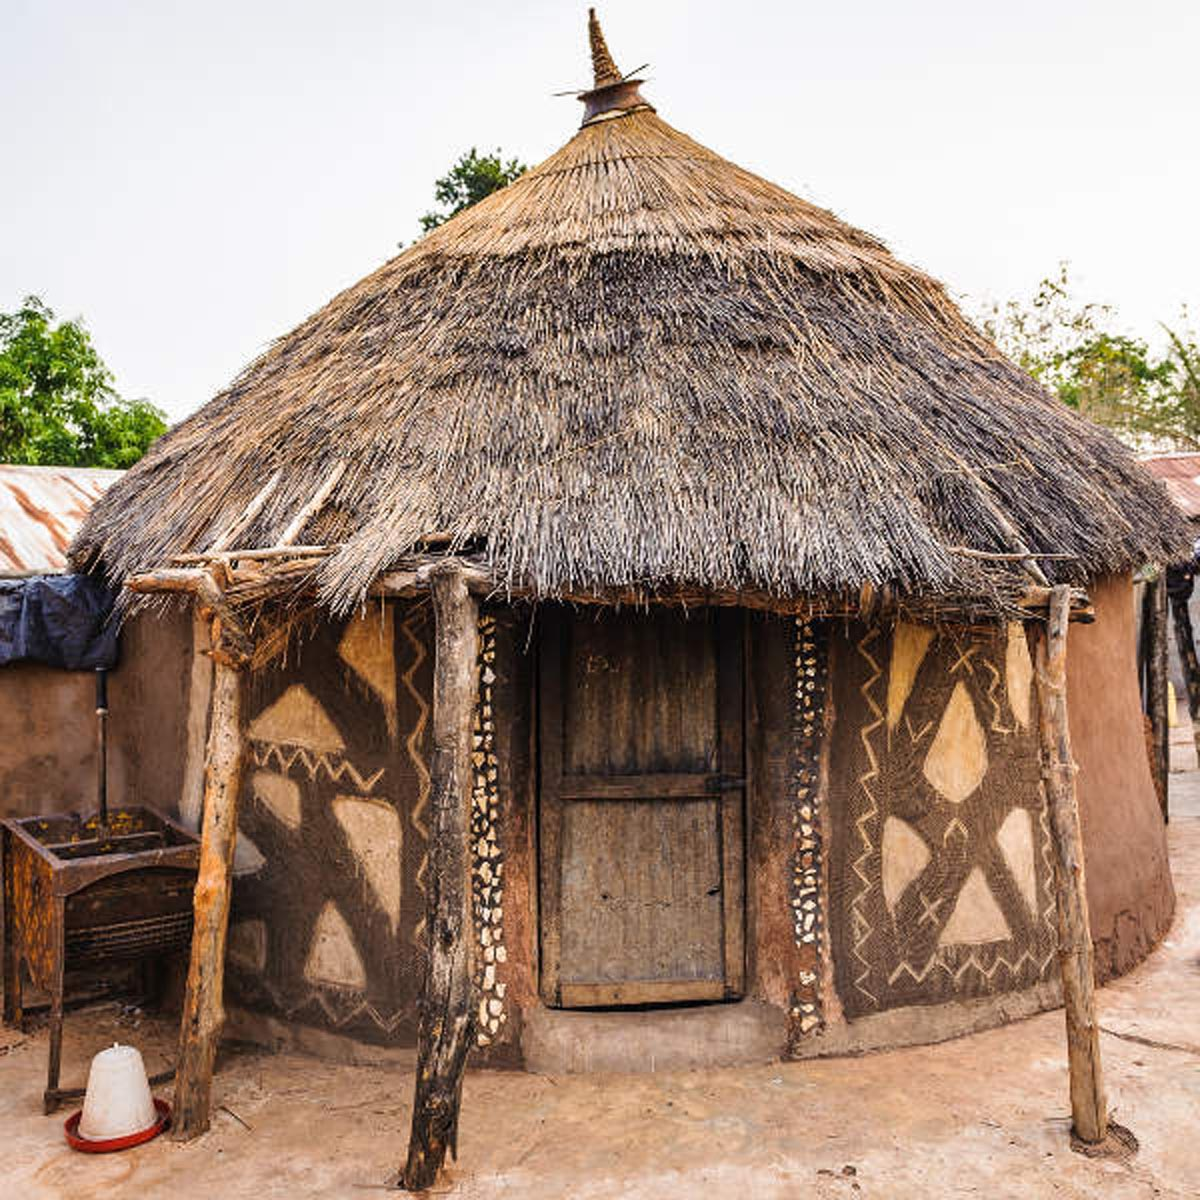 Hand made house in Ghana, Africa